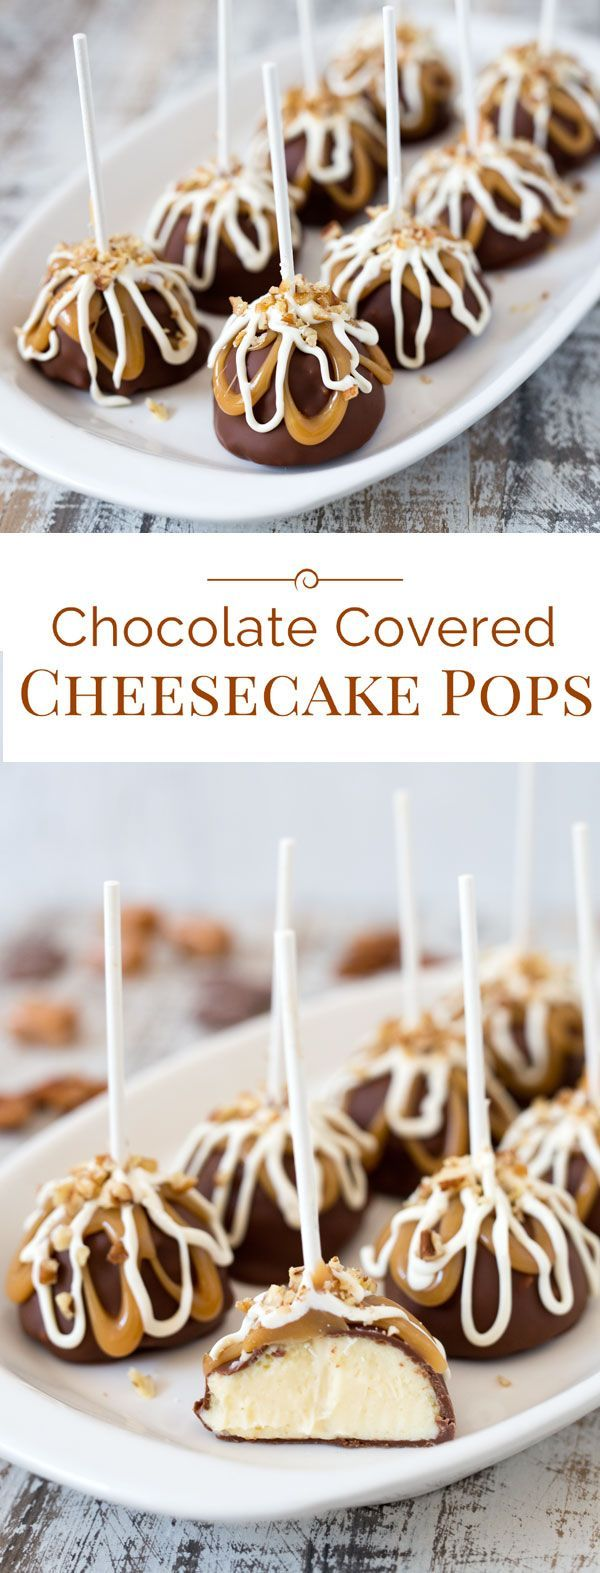 Chocolate Covered Cheesecake Pops with rich, smooth and creamy cheesecake covered in luscious milk chocolate then drizzled with caramel and white chocolate.